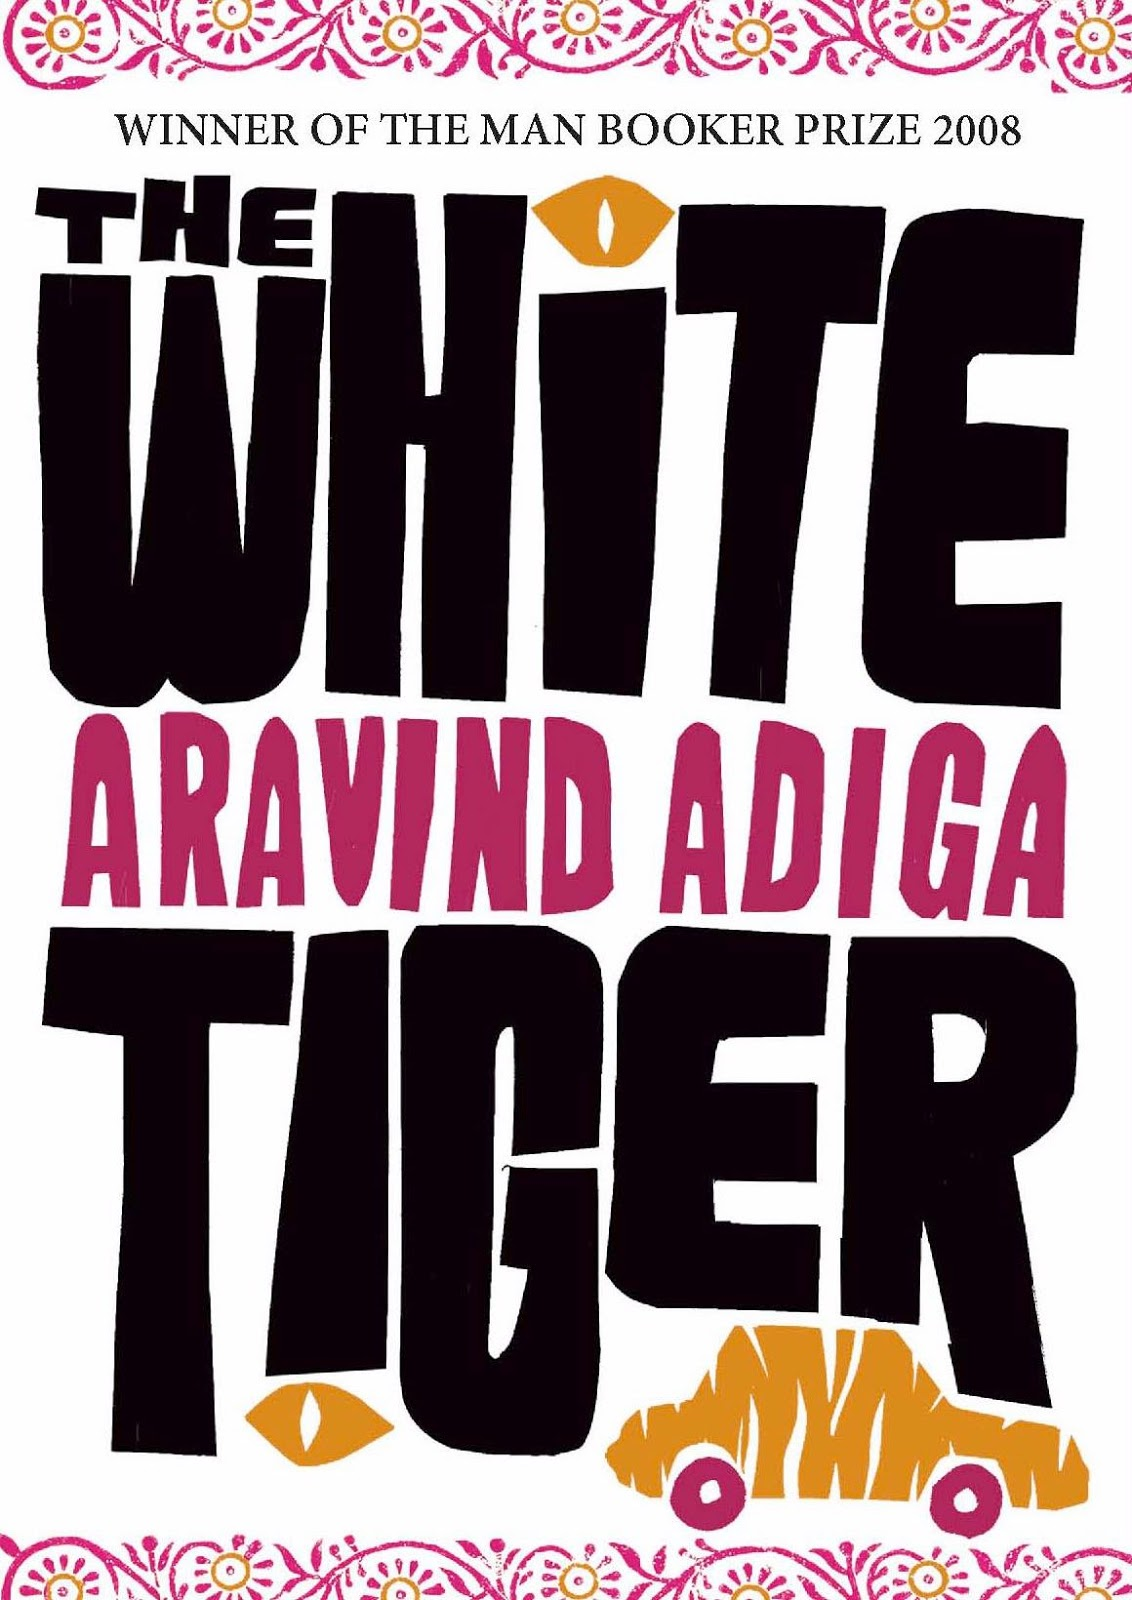 the white tiger and urban life in india the white tiger (2008) by aravind adiga essay The white tiger is the debut novel by indian author aravind adiga it was first published in 2008 and won the man booker prize for the same year the novel studies the contrast between india's rise as a modern global economy and the main character, who comes from crushing rural poverty.